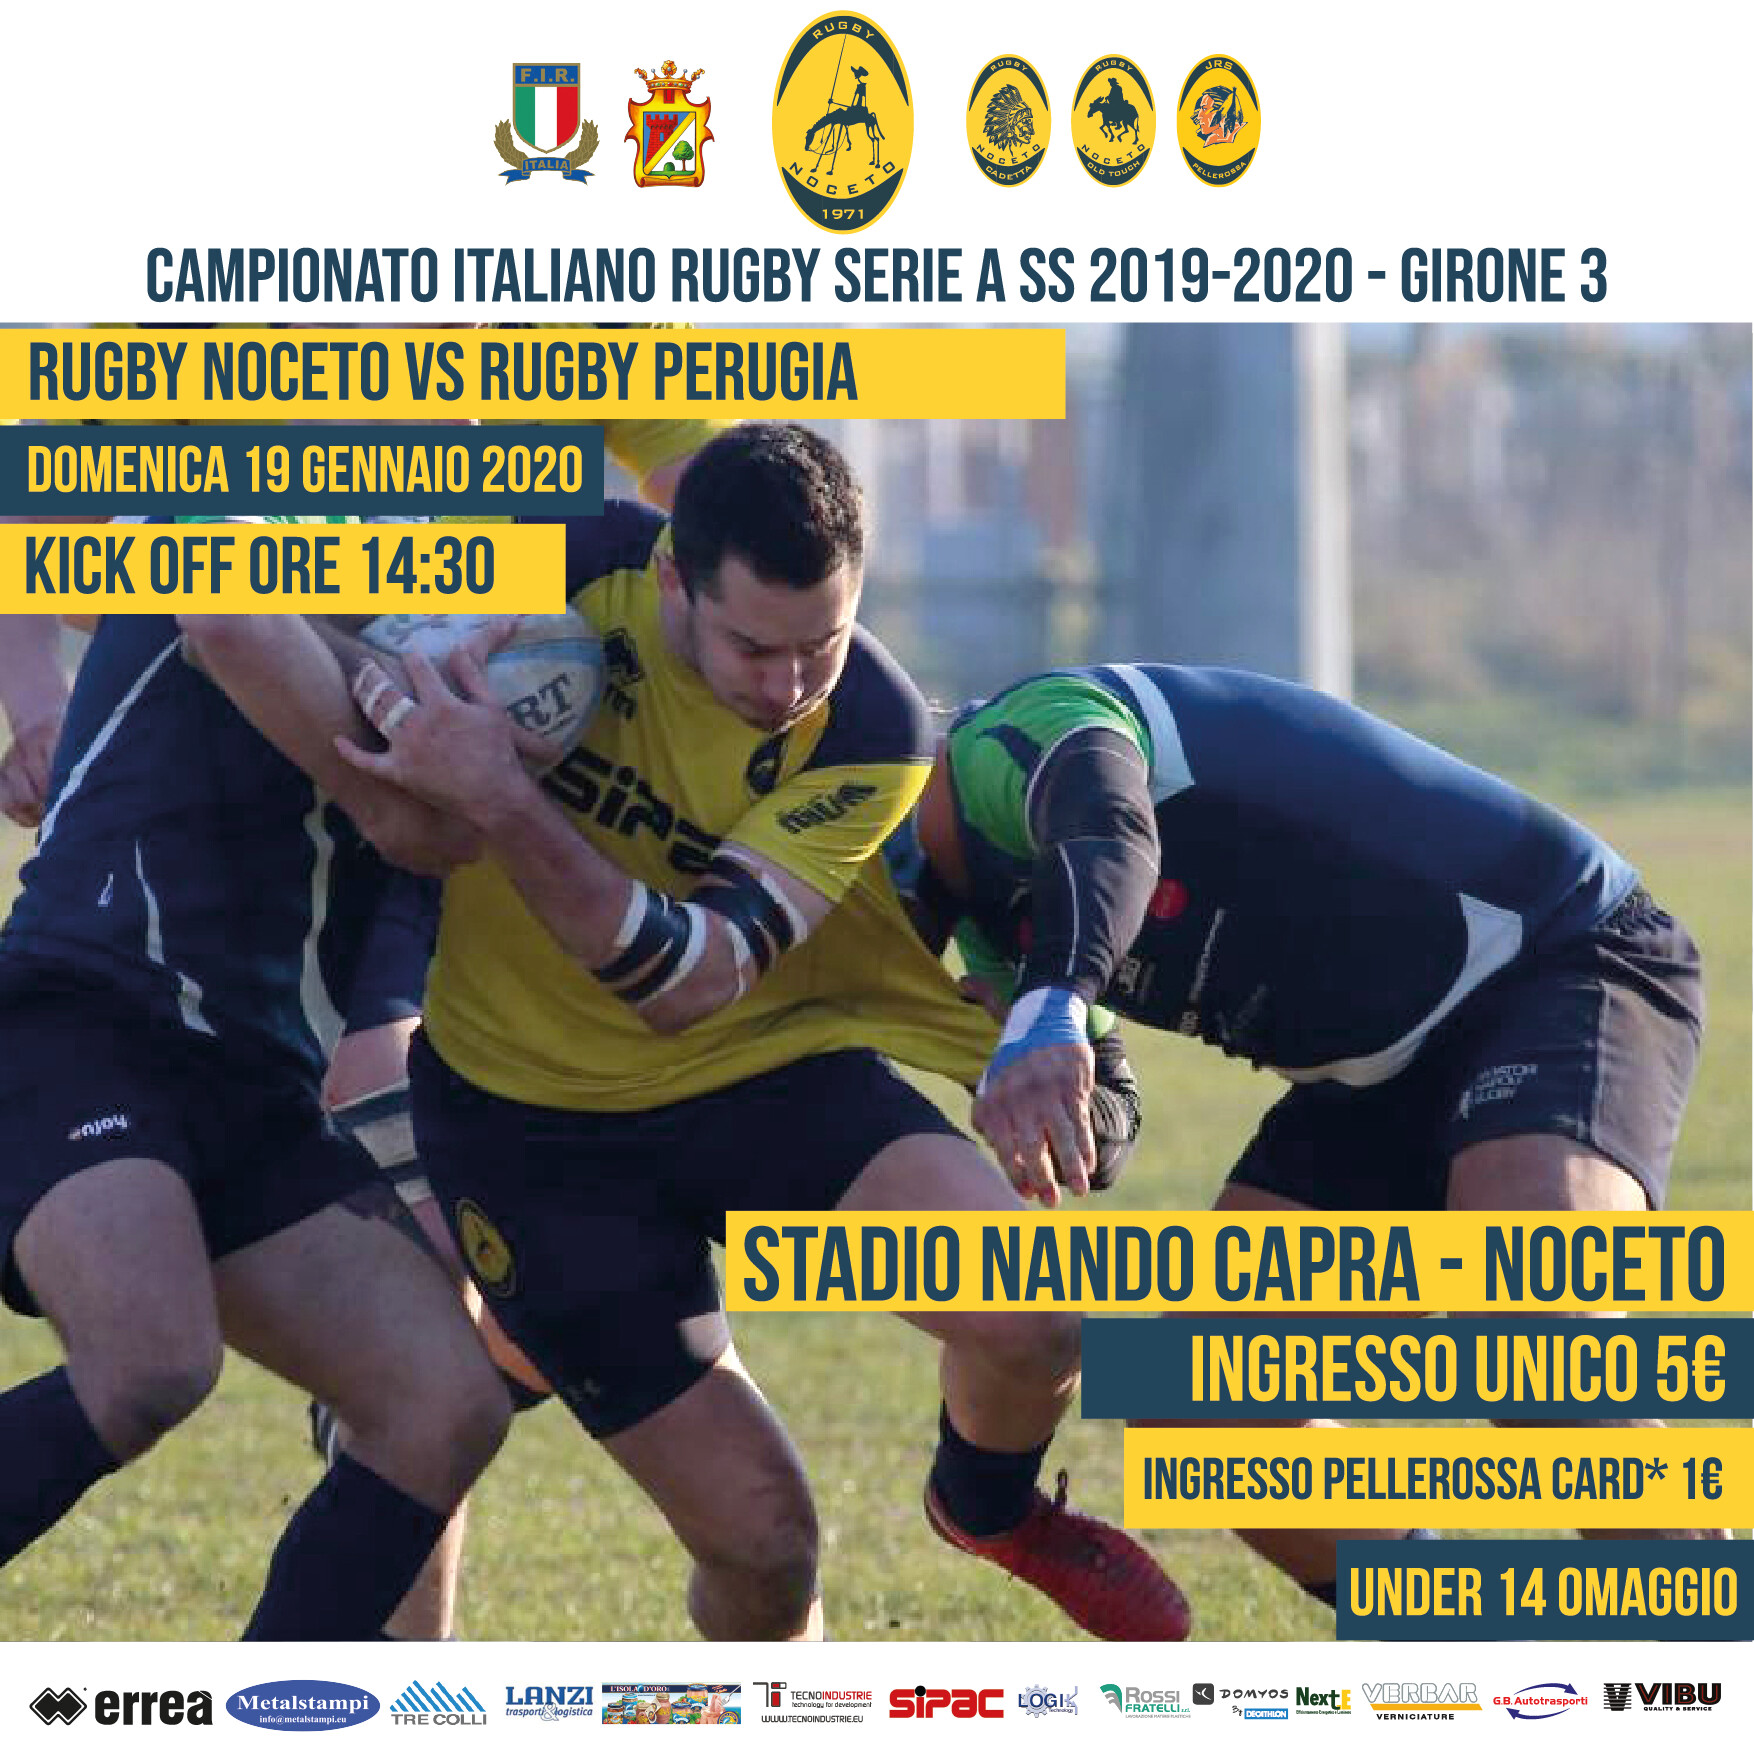 Rugby Noceto vs Rugby Perugia